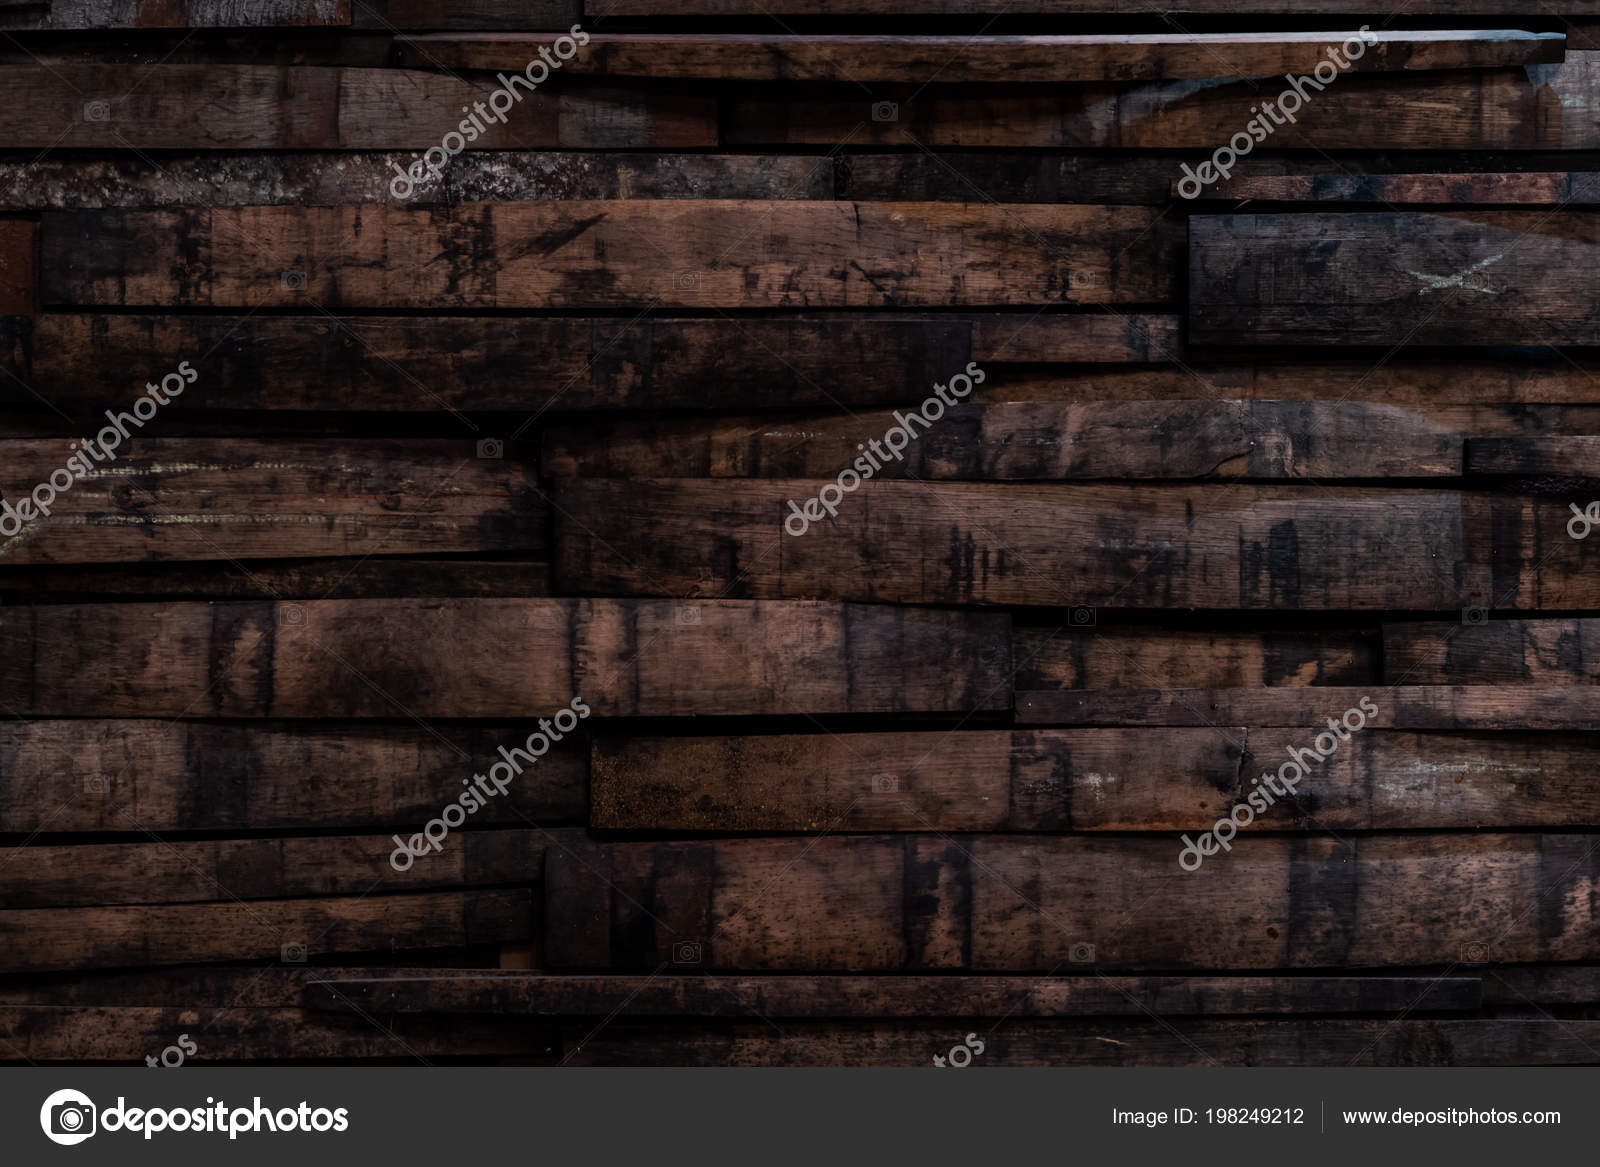 Used Bourbon Barrel Staves Wall Background Image Stock Photo